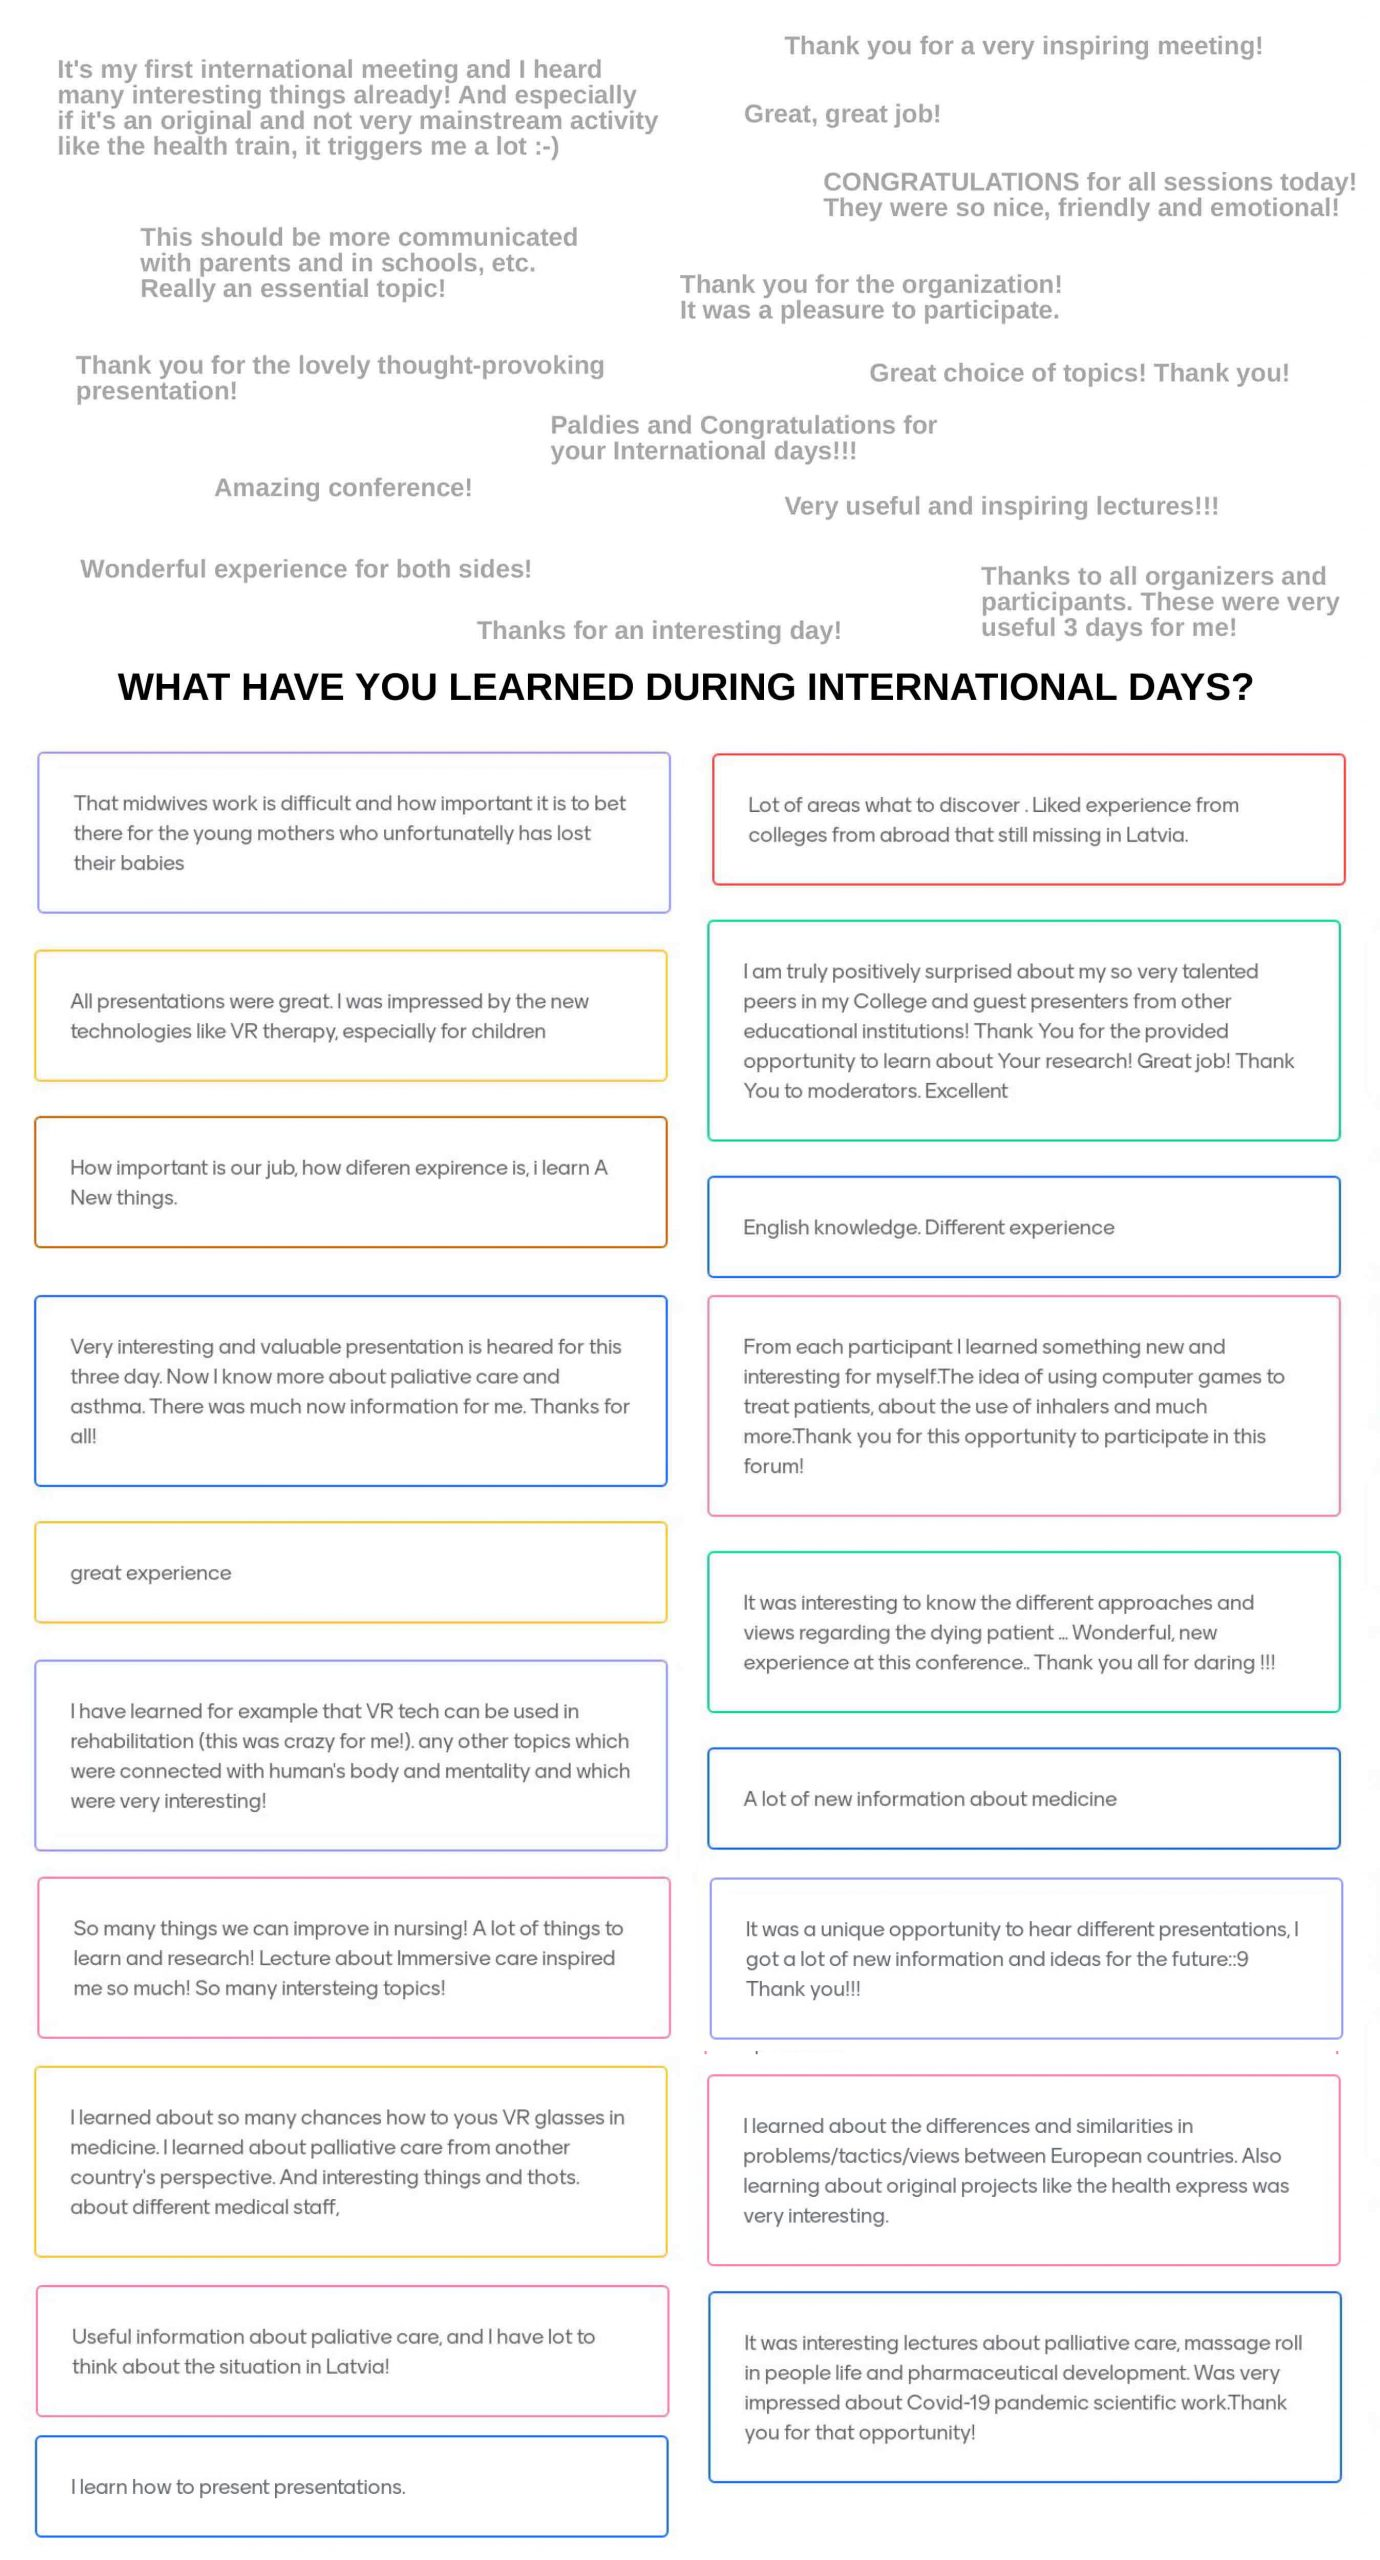 International Days Review and Participant Feedback